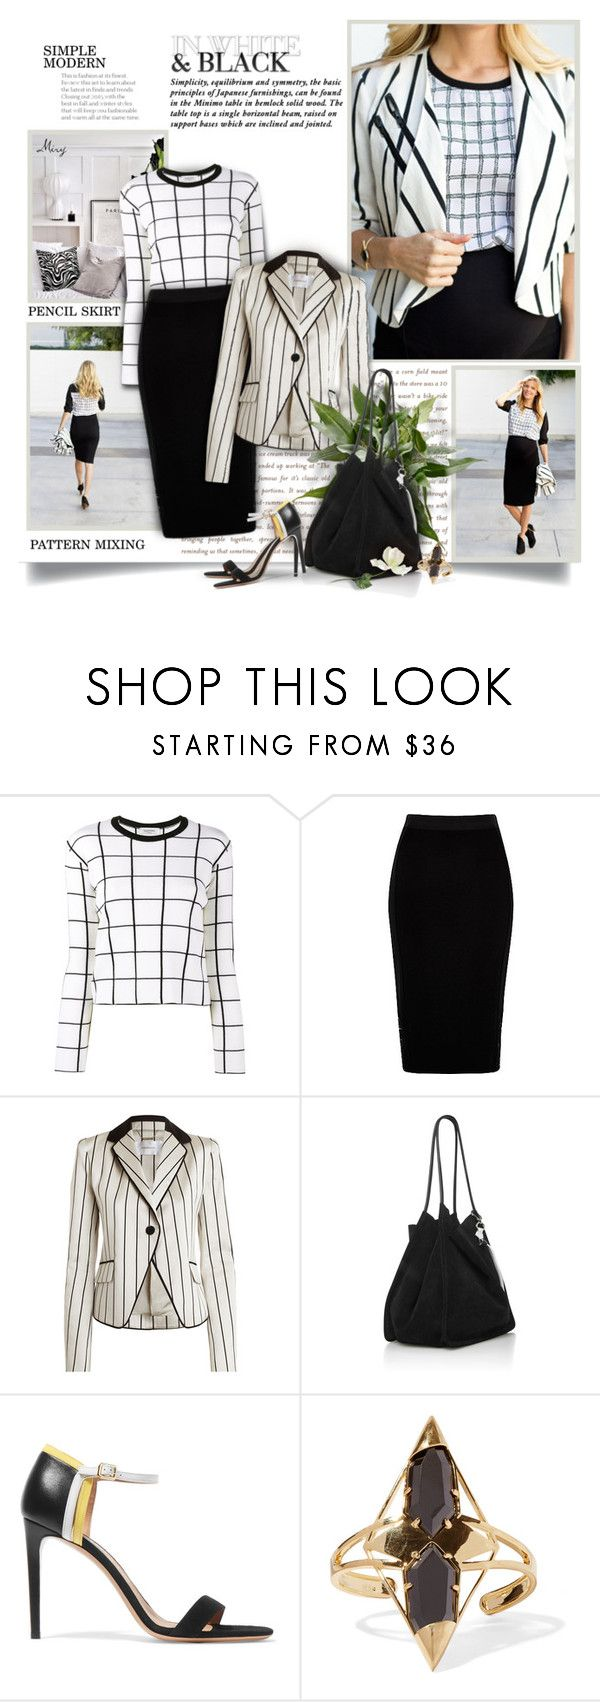 """In White & Black"" by thewondersoffashion ❤ liked on Polyvore featuring Prada, Valentino, Zimmermann, Proenza Schouler, Salvatore Ferragamo and Noir Jewelry"